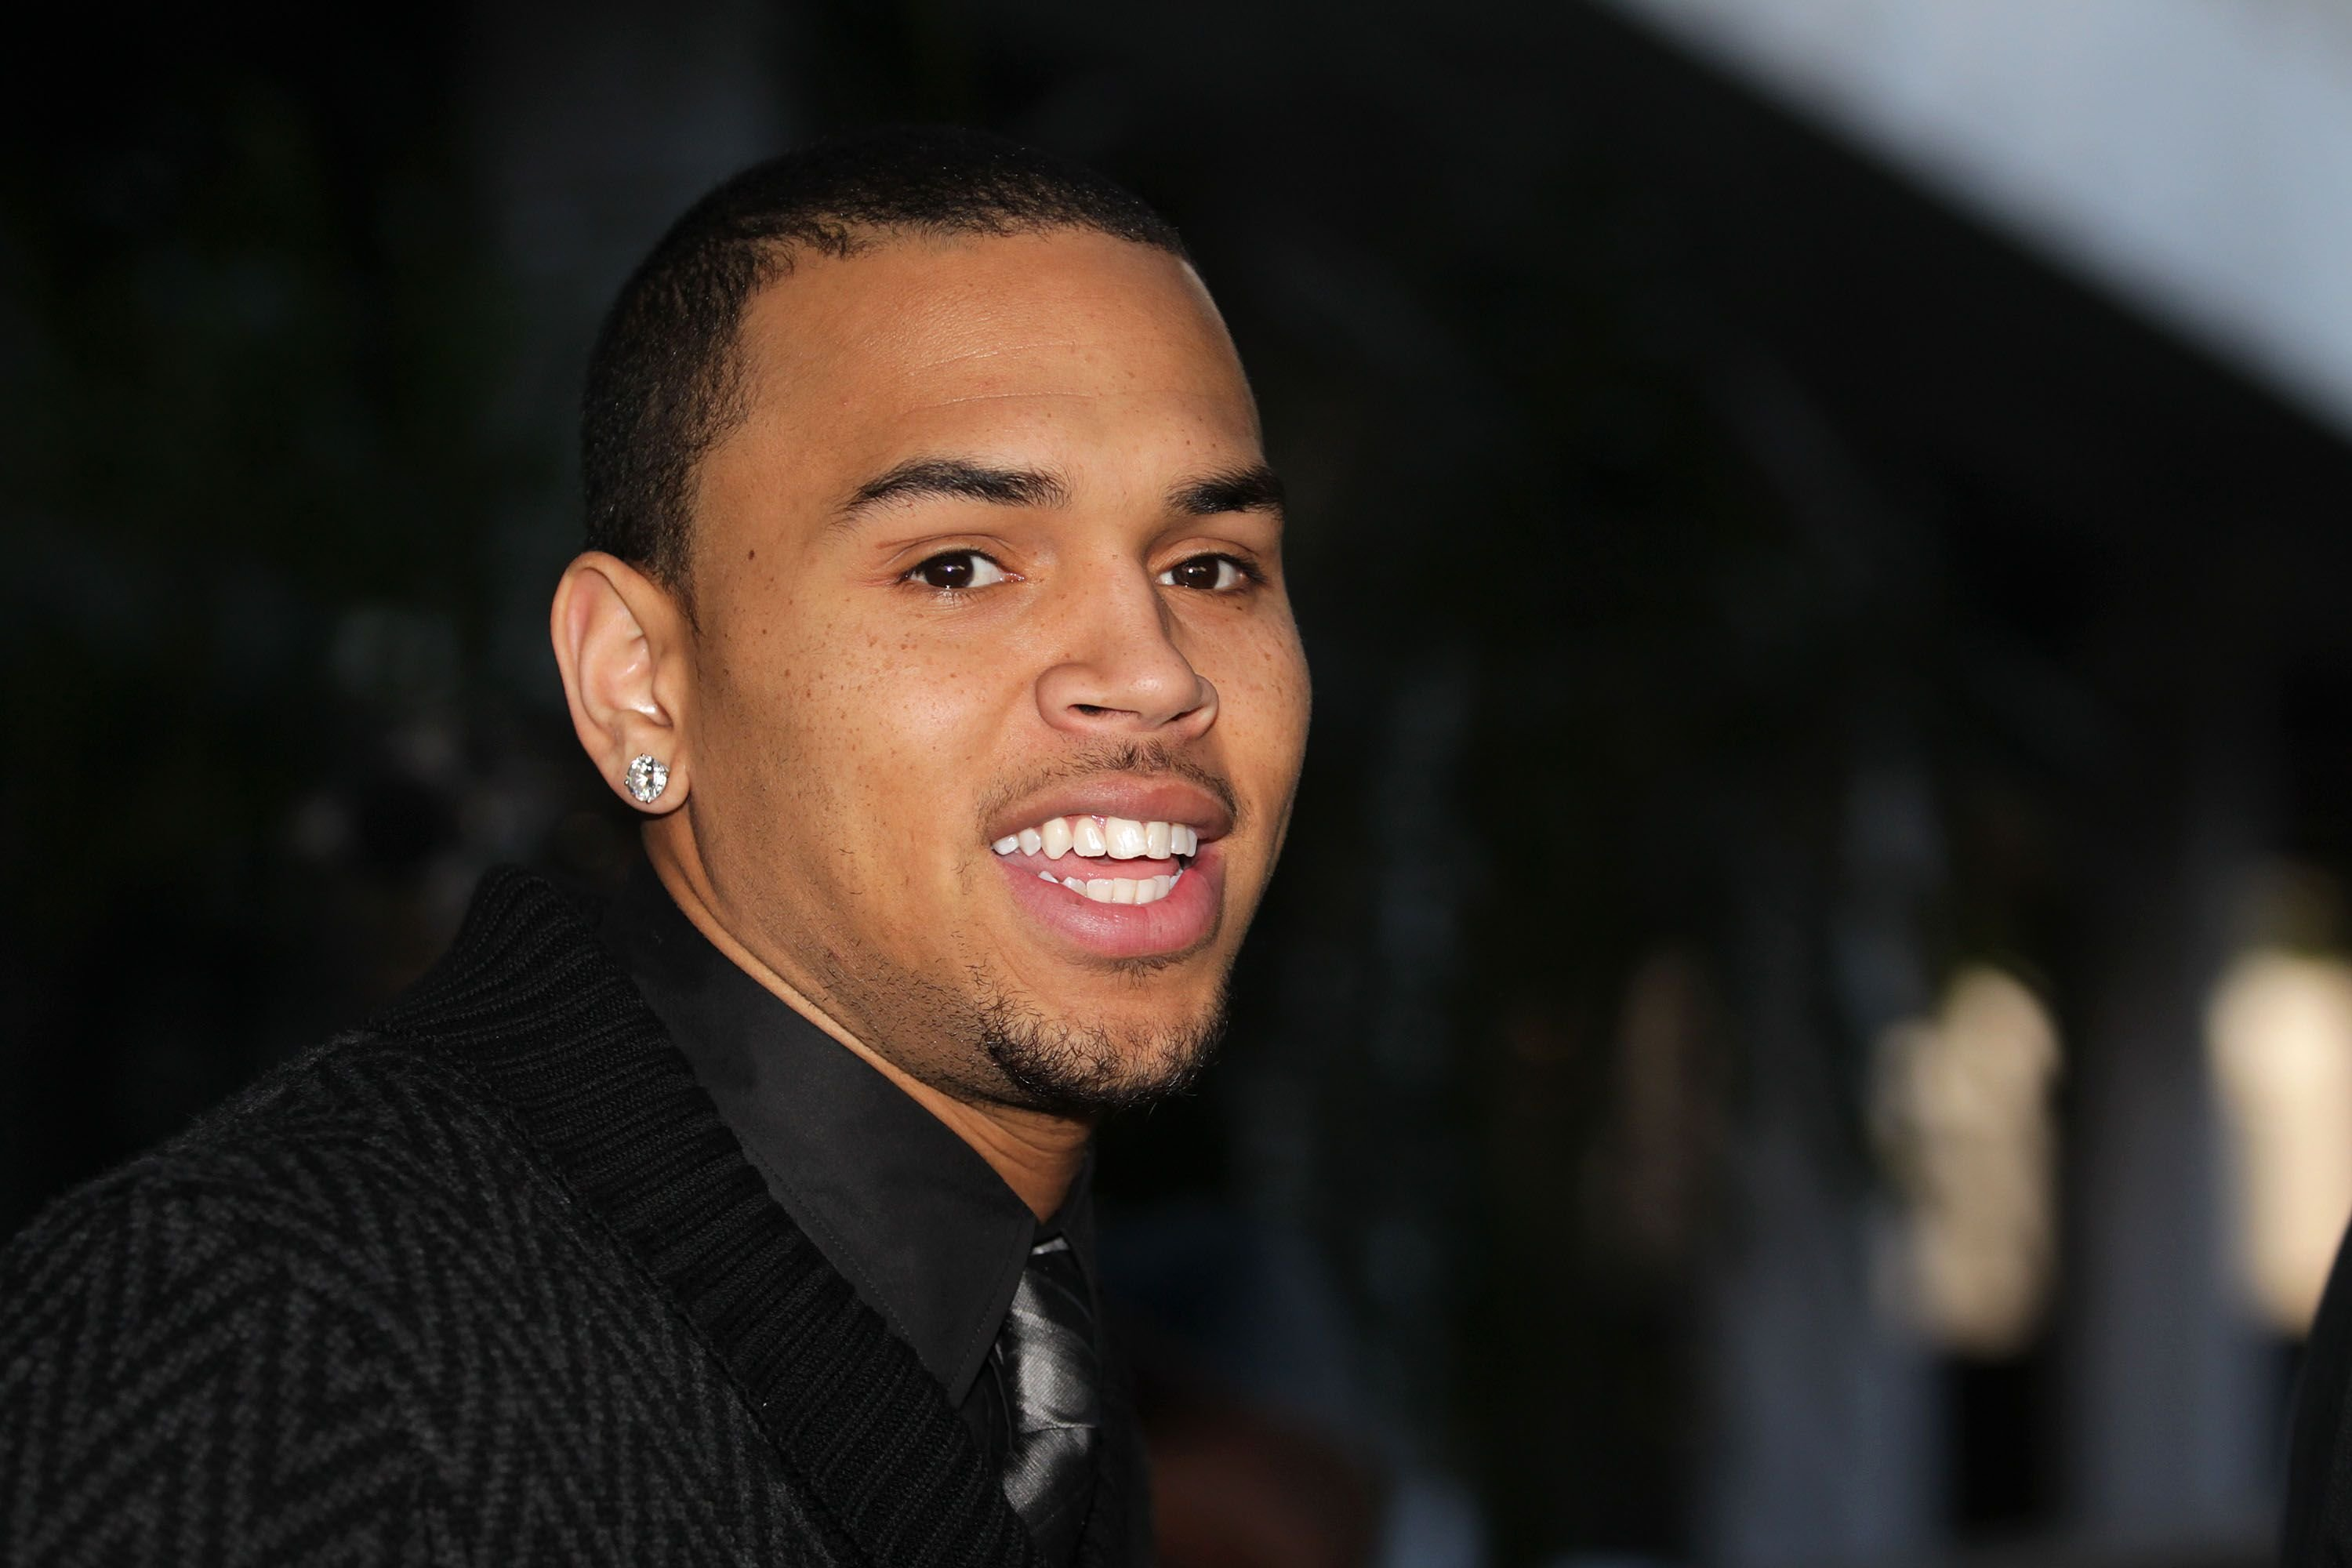 Chris Brown at the Los Angeles courthouse after a probation hearing in January 2011   Source: Getty Images